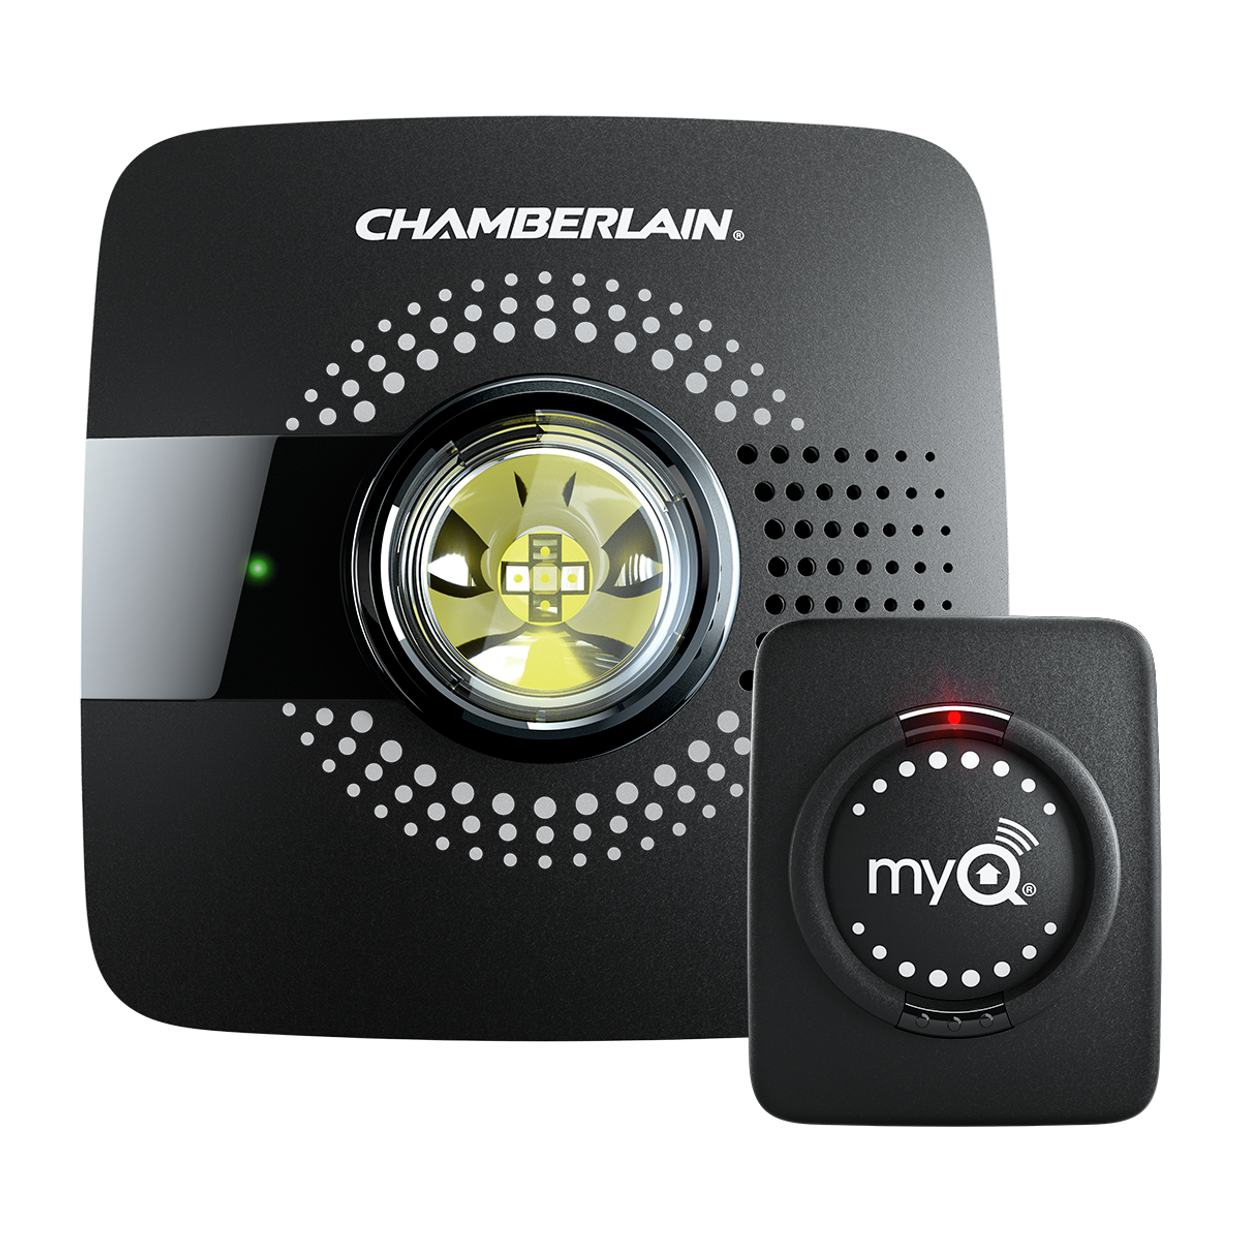 Chamberlain Garage Door Opener Hd930ev Review Dandk